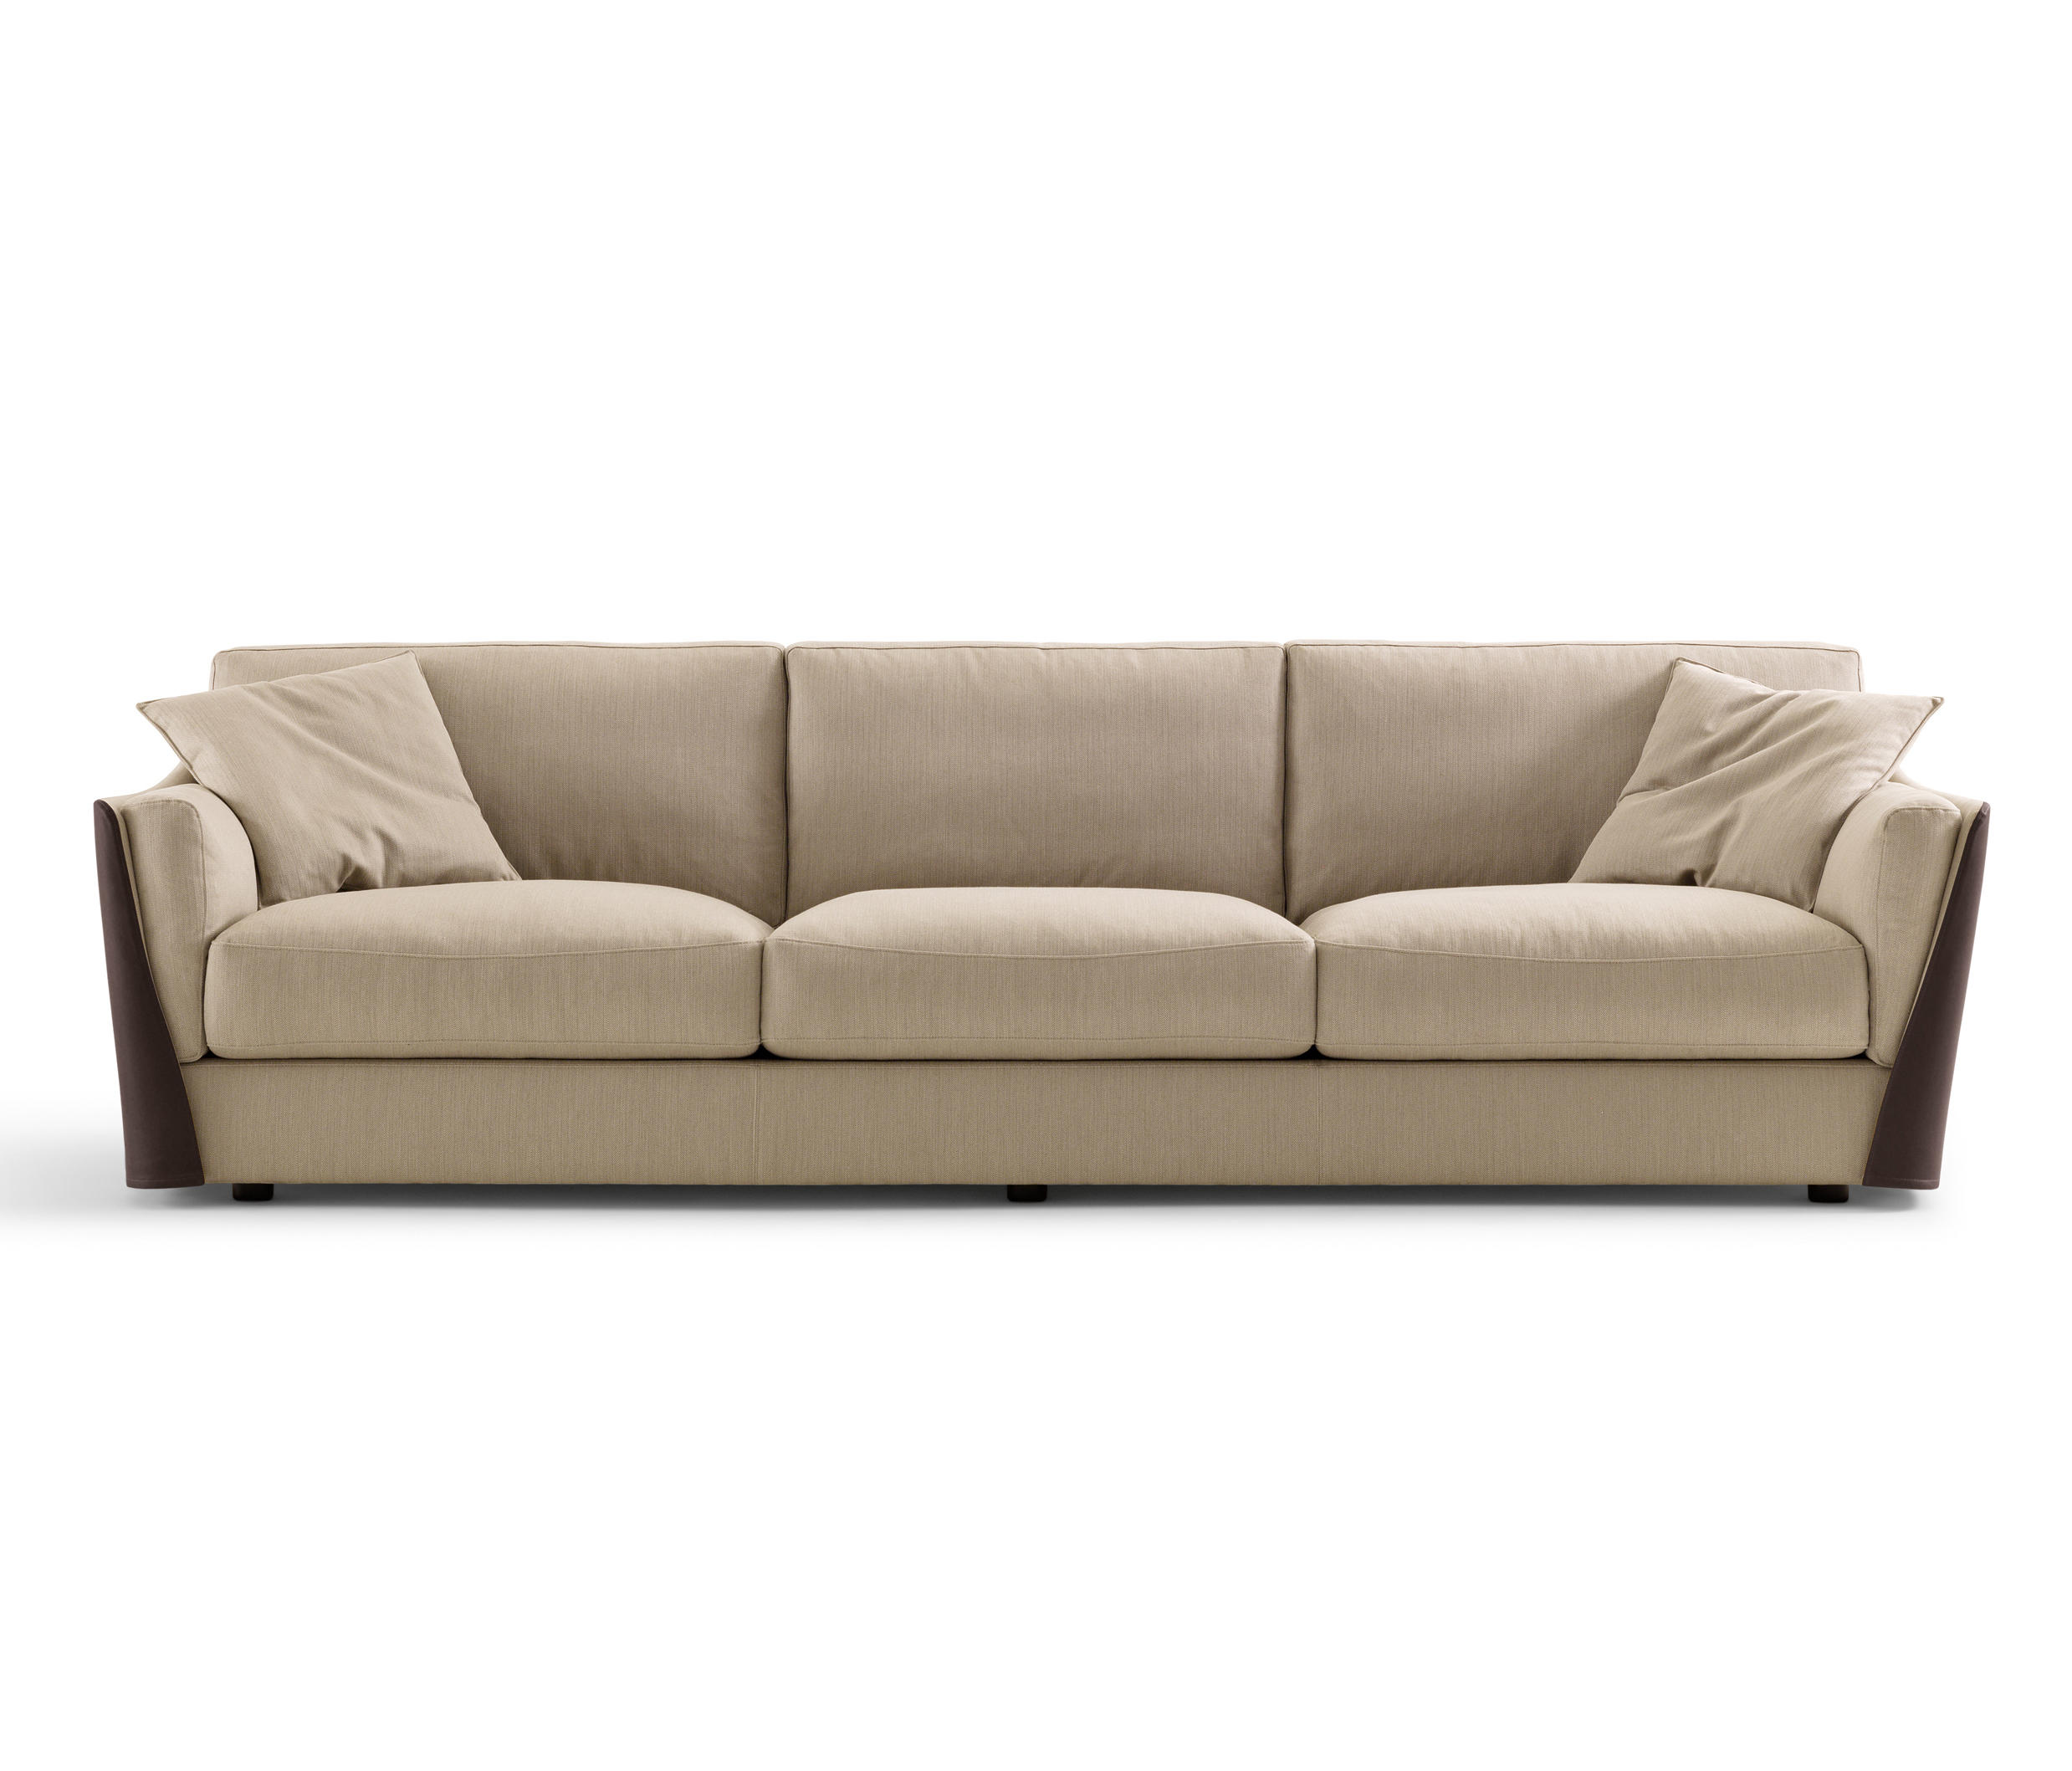 Vittoria Sofa Sofas From Giorgetti Architonic